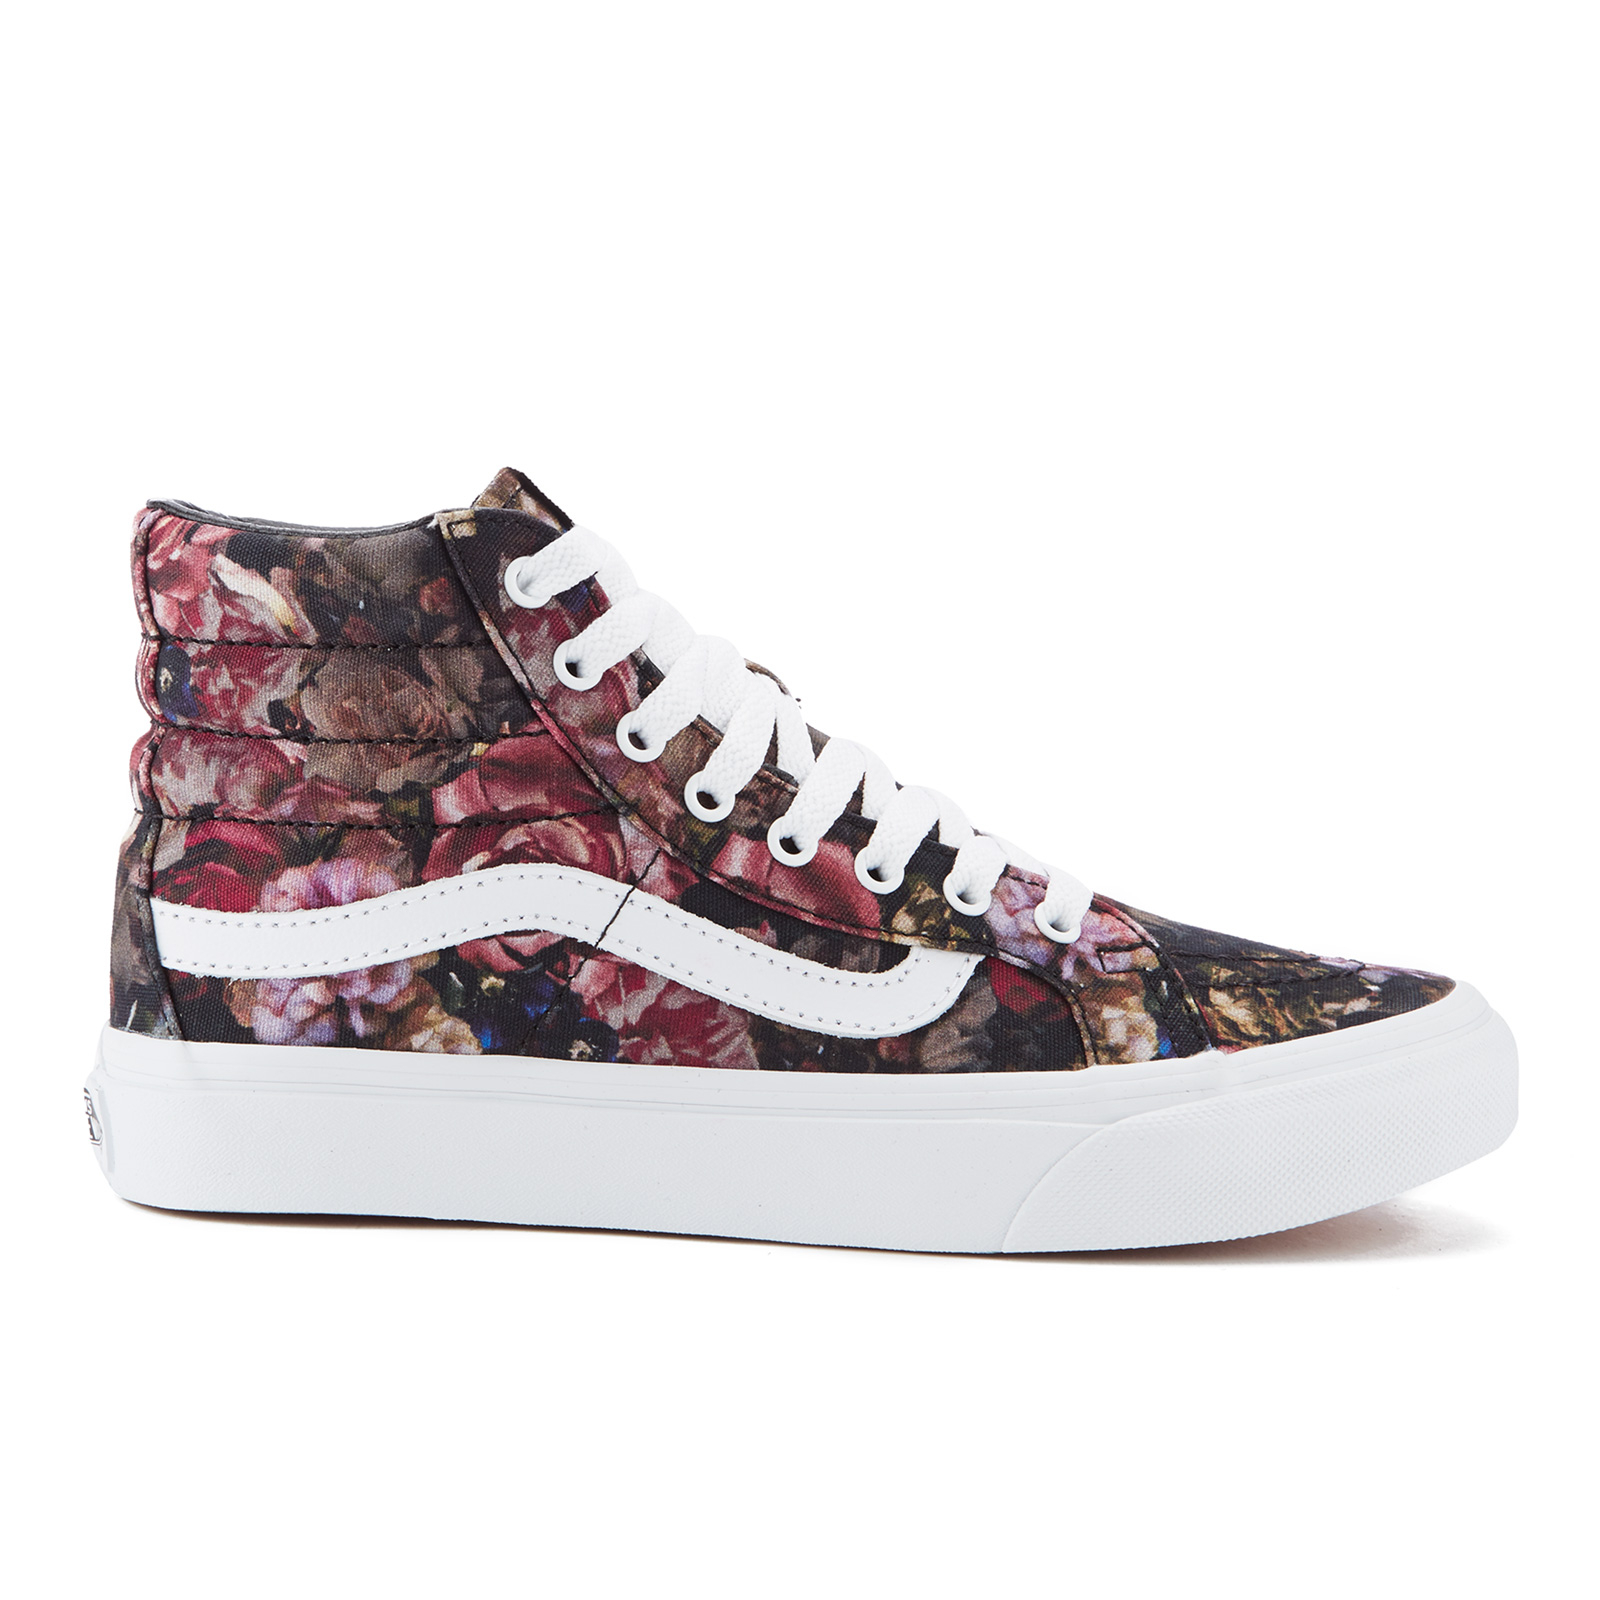 3913431d2cfd Vans Women s Sk8-Hi Floral Trainers - Moody Floral Black True White - Free  UK Delivery over £50